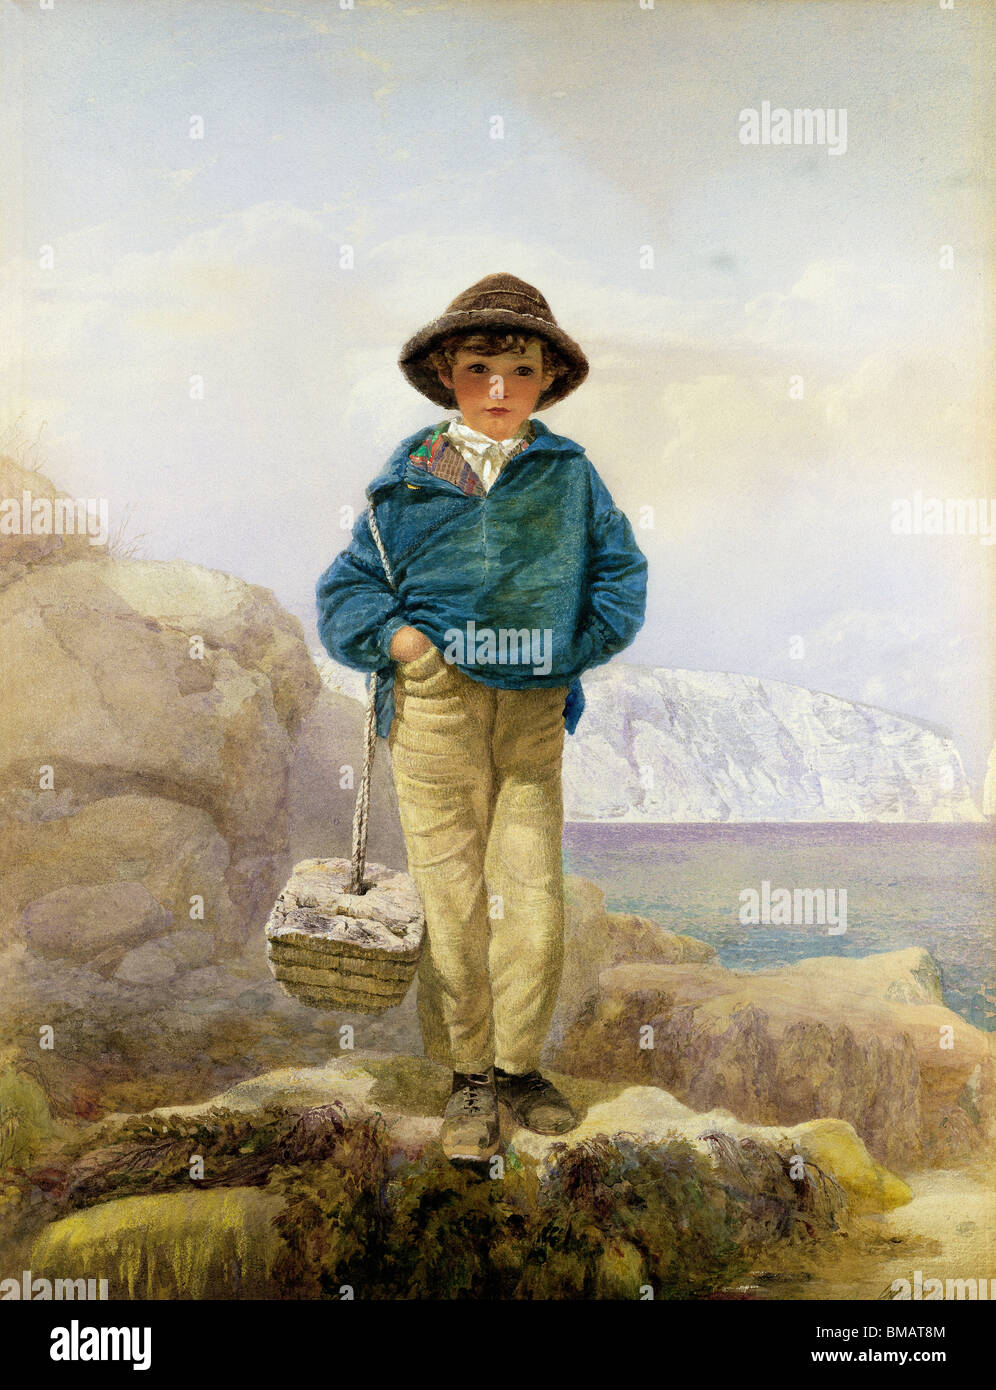 A Fisher Boy, by Alfred Downing Fripp. England, 19th century - Stock Image